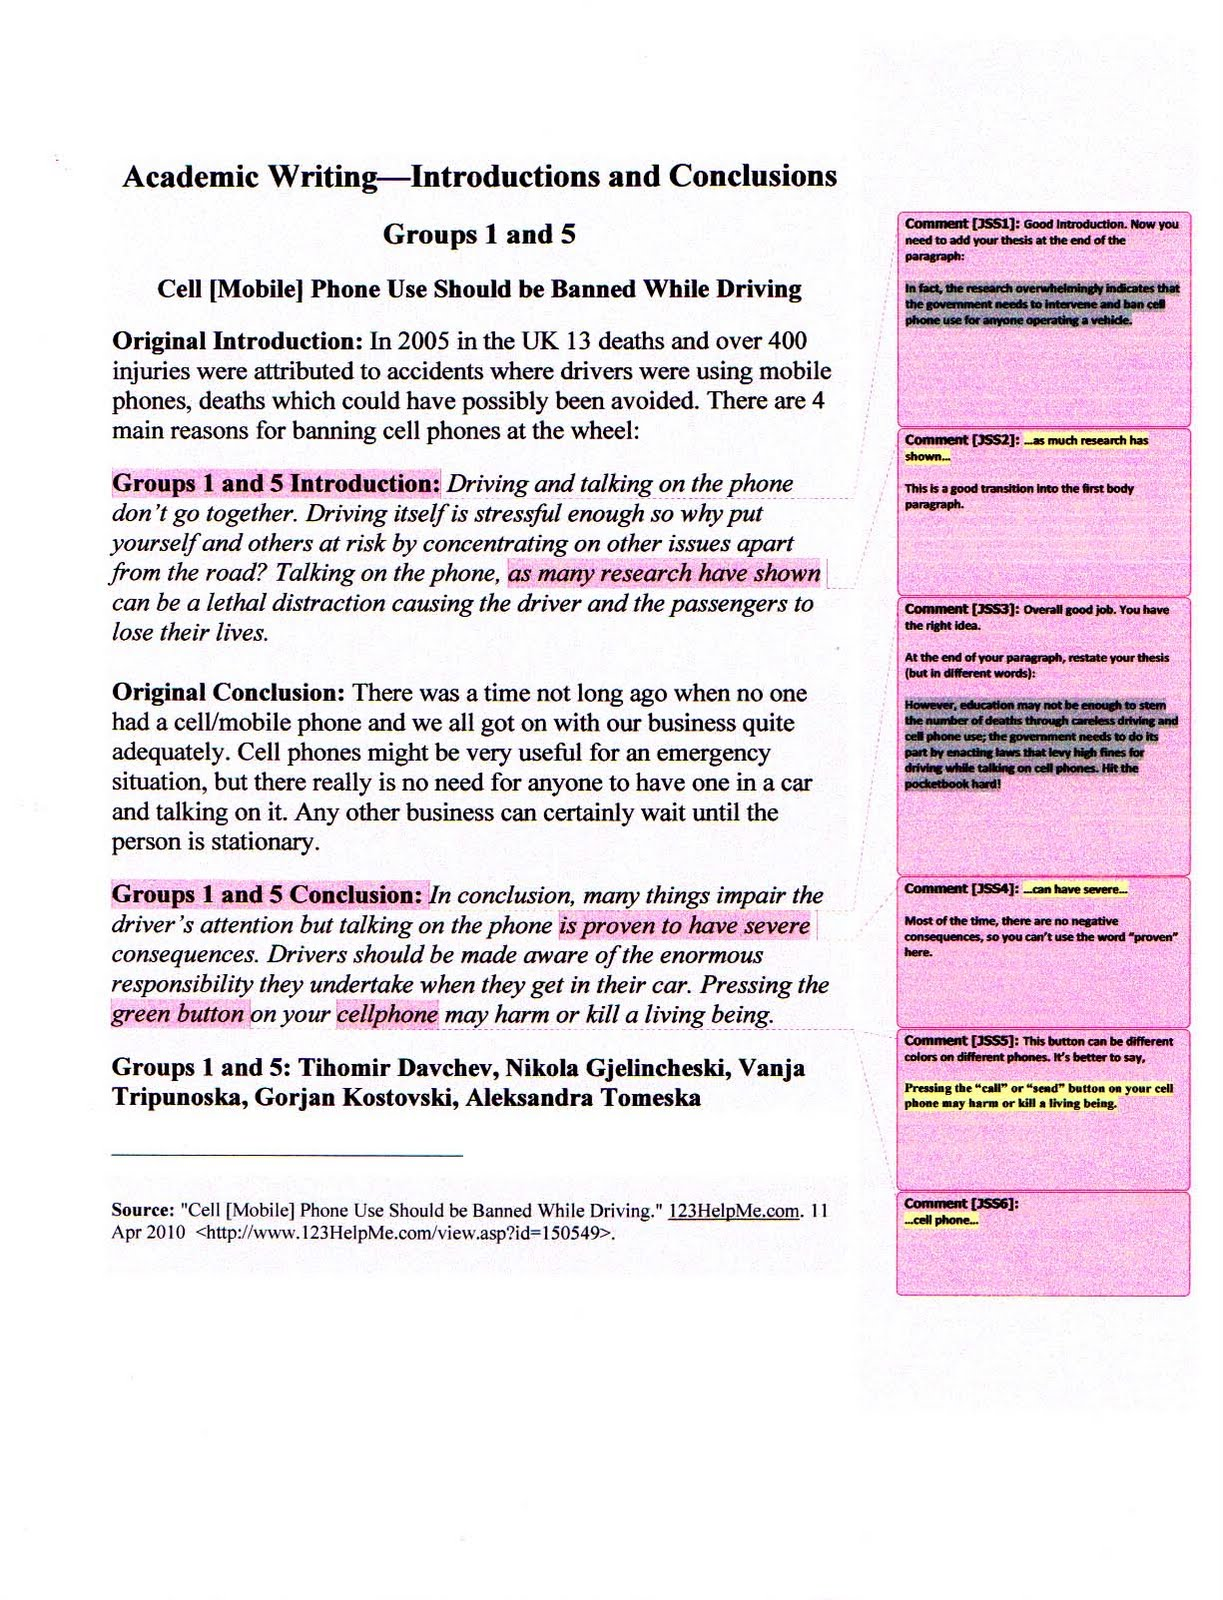 How to Write the Georgetown University Essays